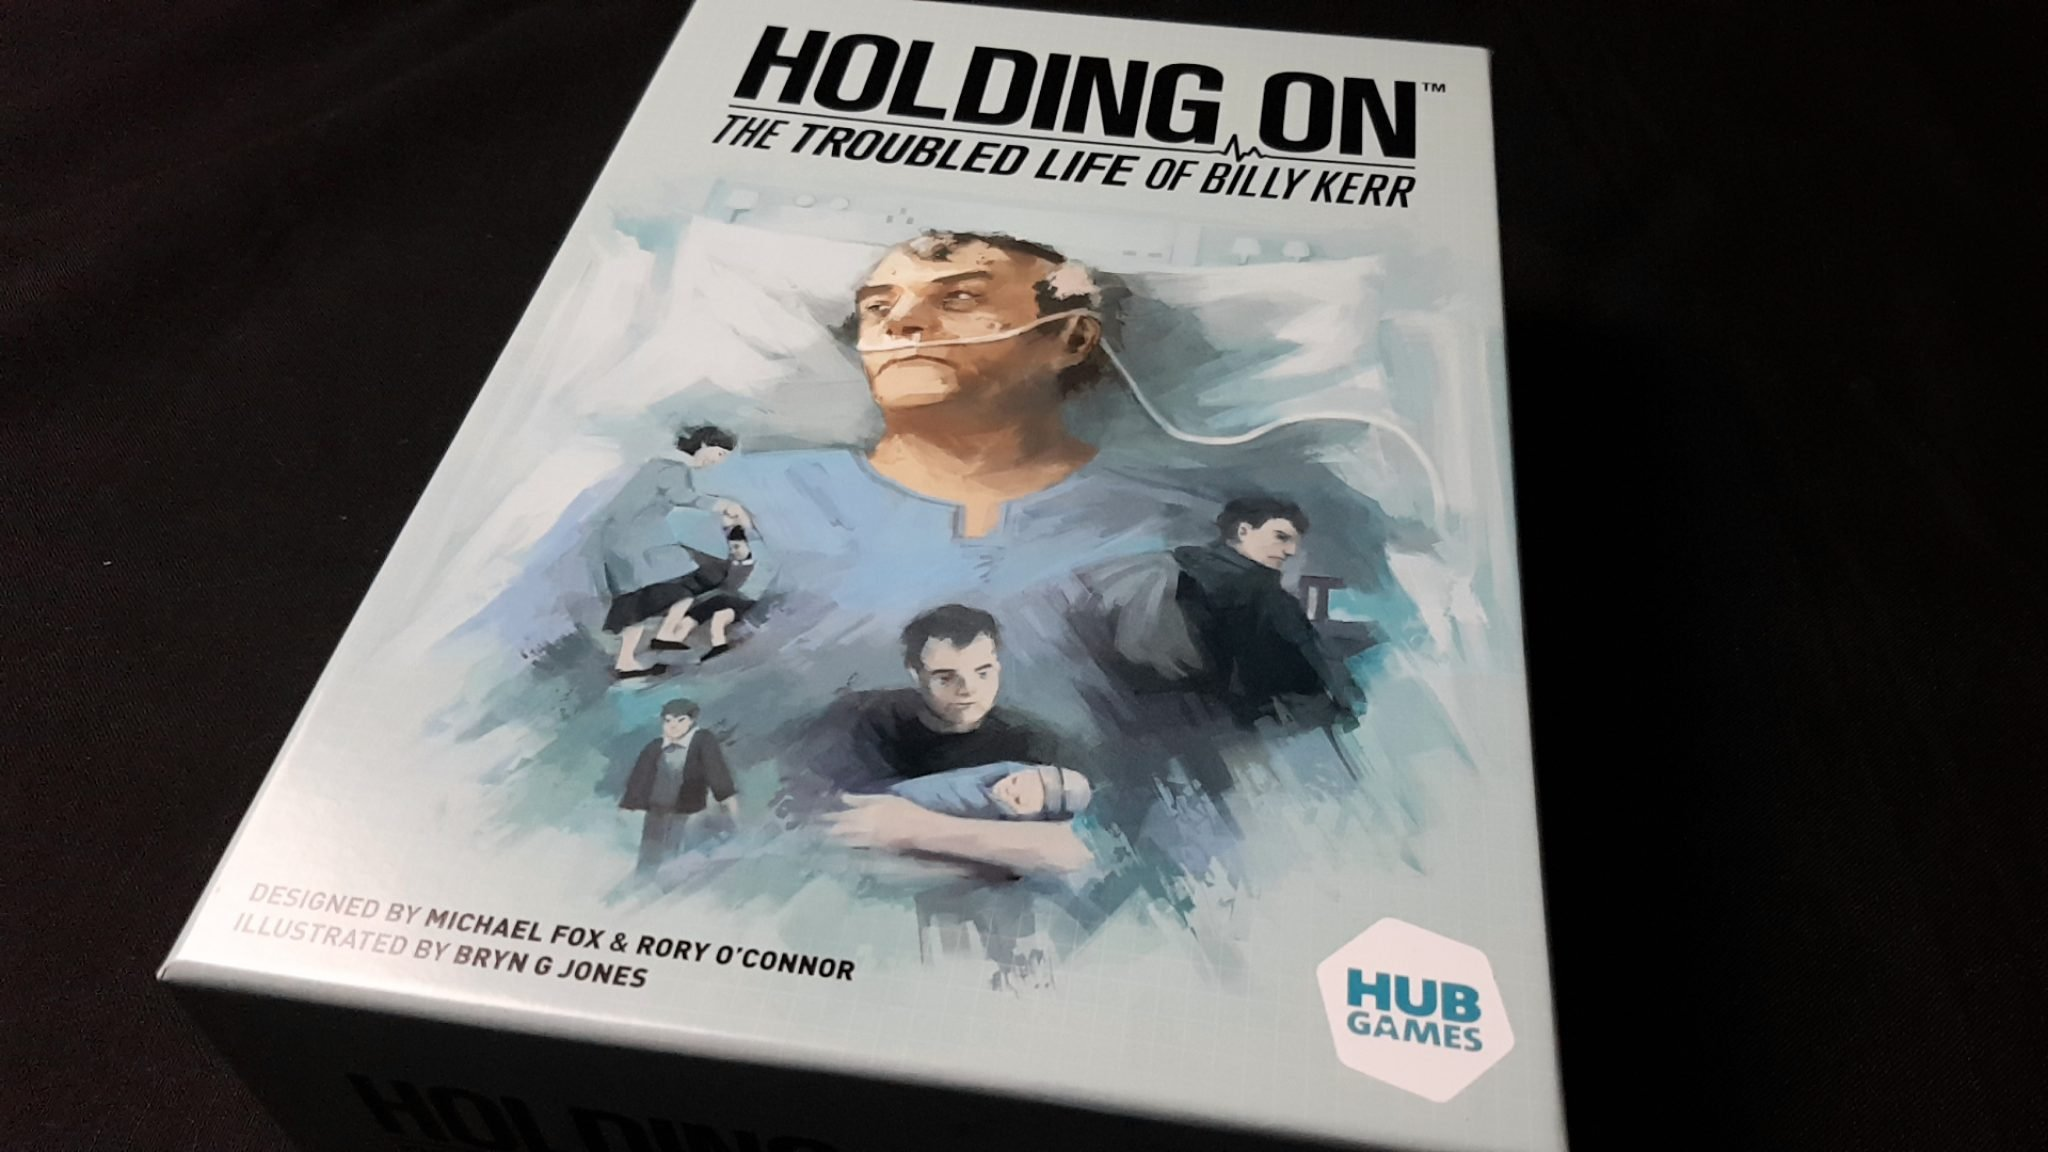 Holding On: The Troubled Life of Billy Kerr (2018) image